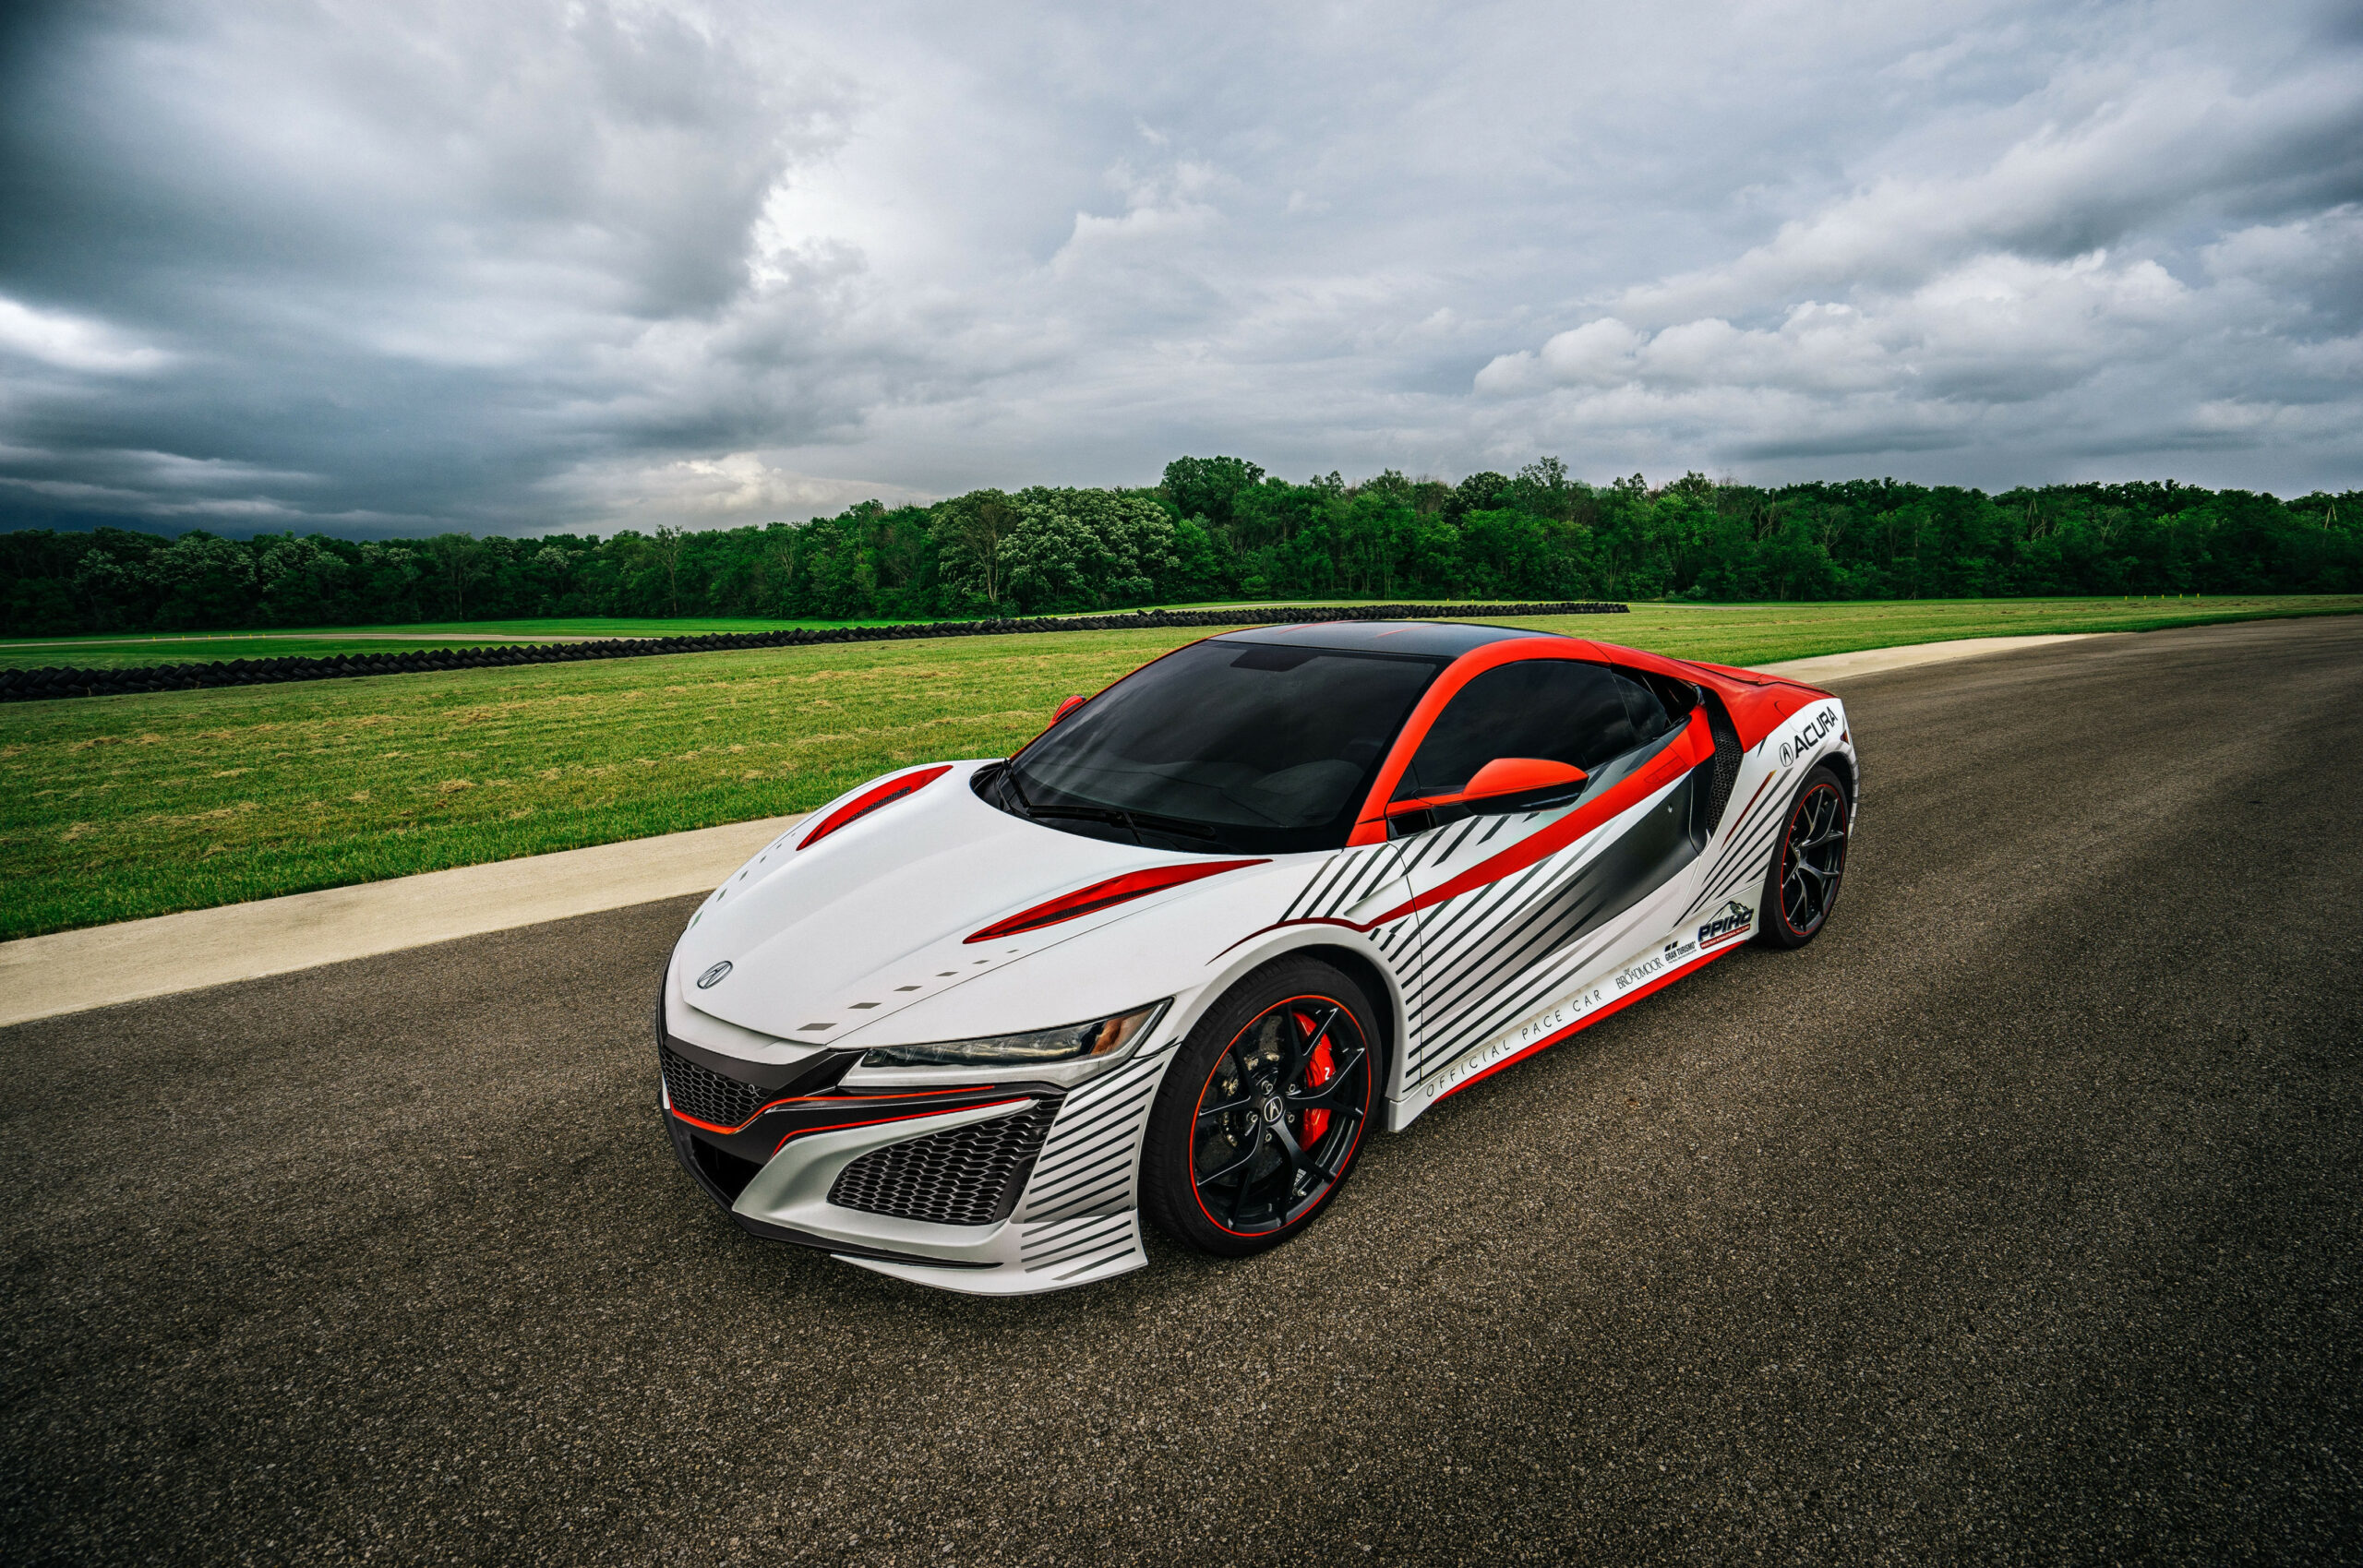 New Acura NSX to Pace Pikes Peak Hill Climb - acura pikes peak 2020